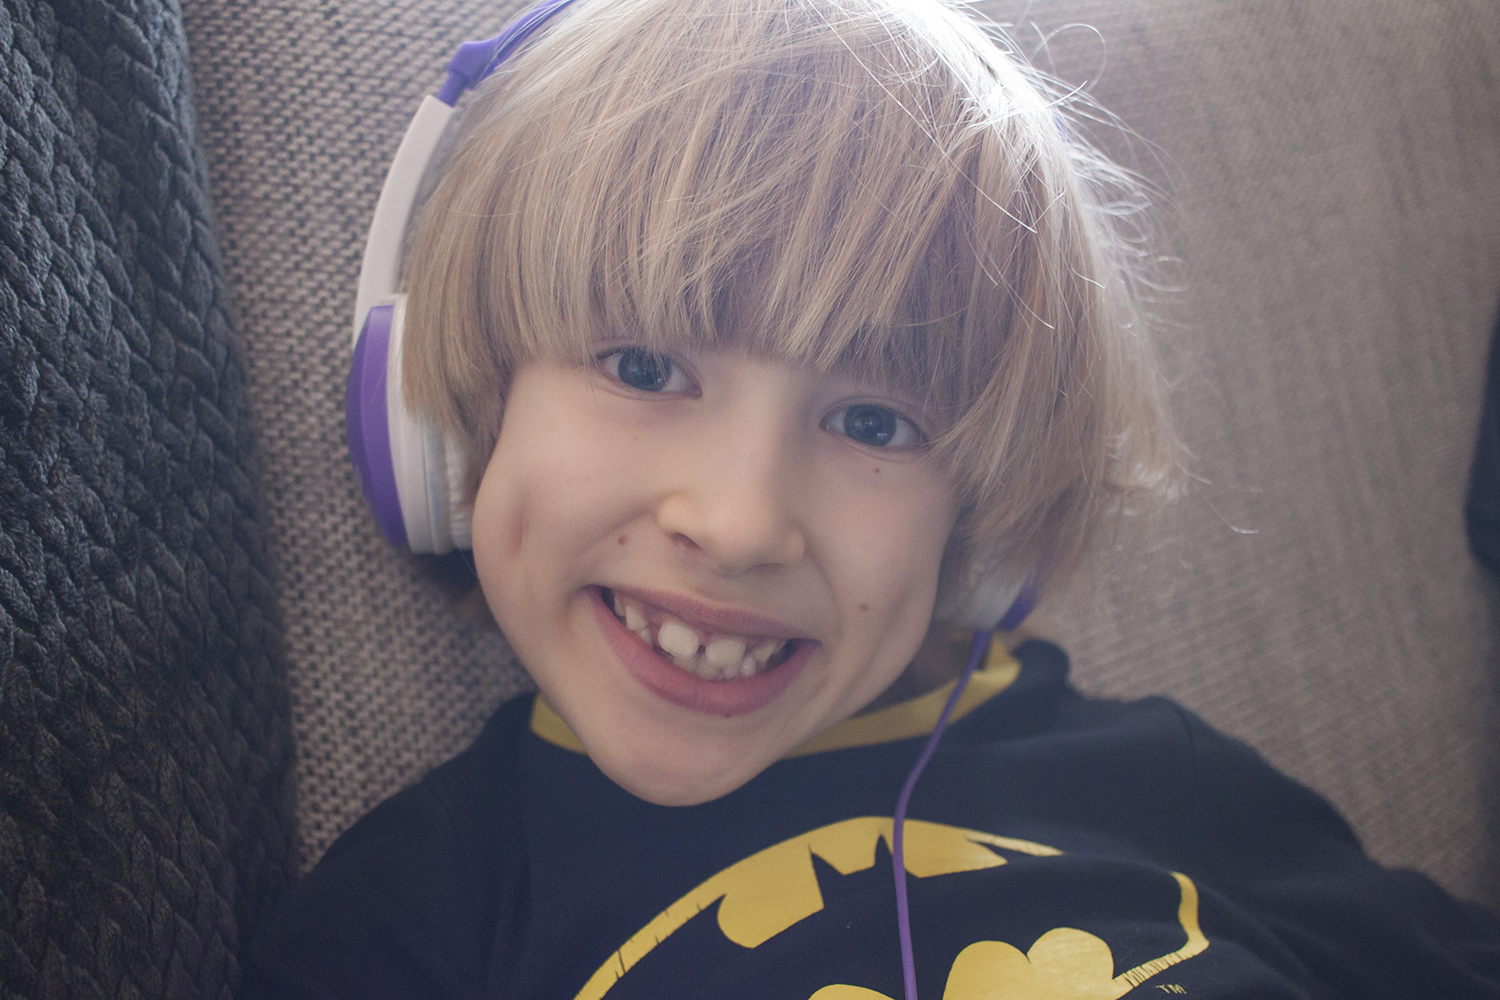 A boy with a batman t-shirt wearing purple and white headphones